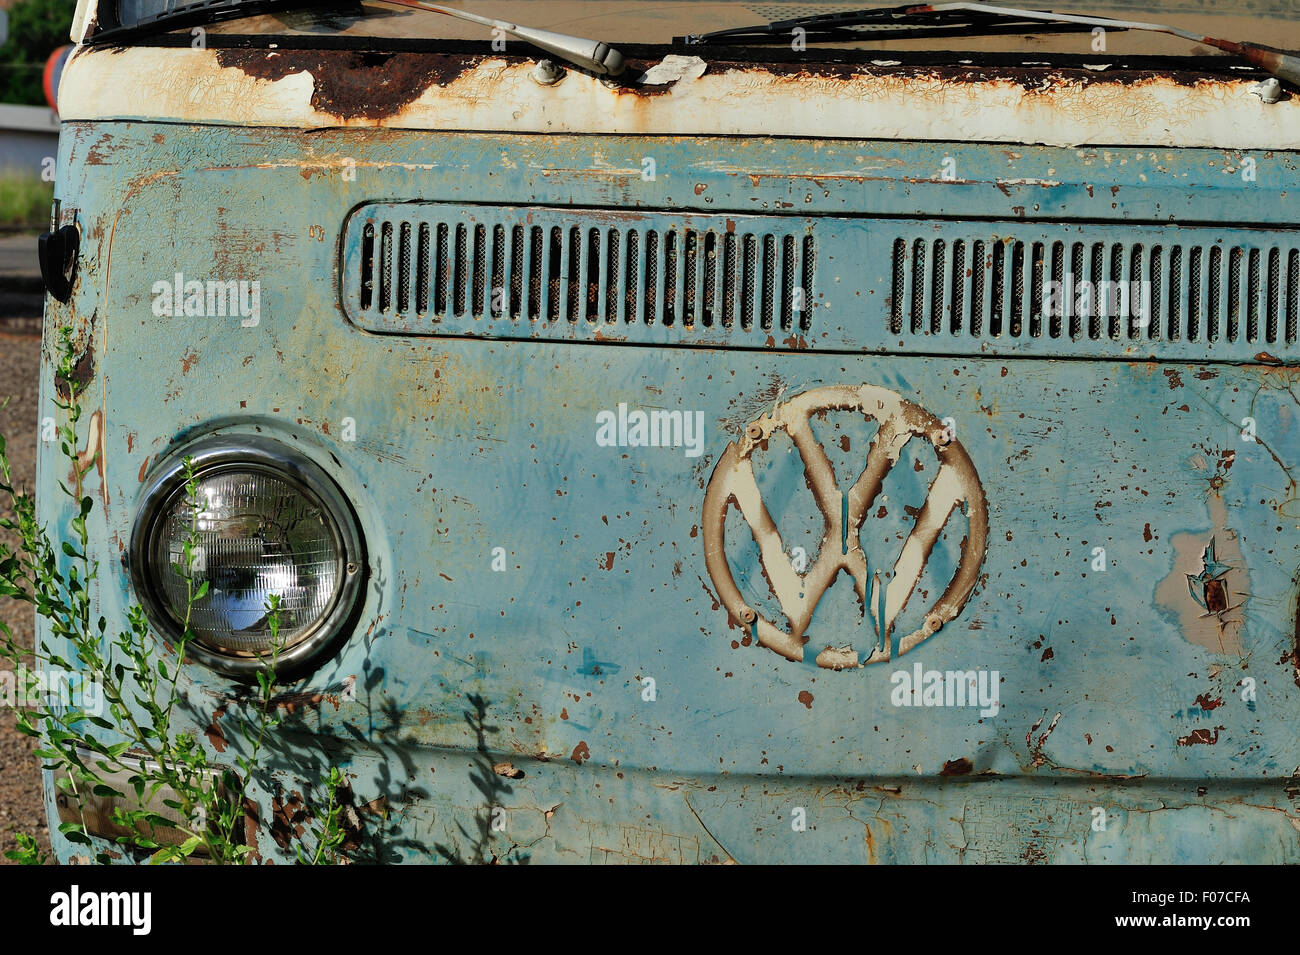 Volkswagen In America America Stock Photos & Volkswagen In